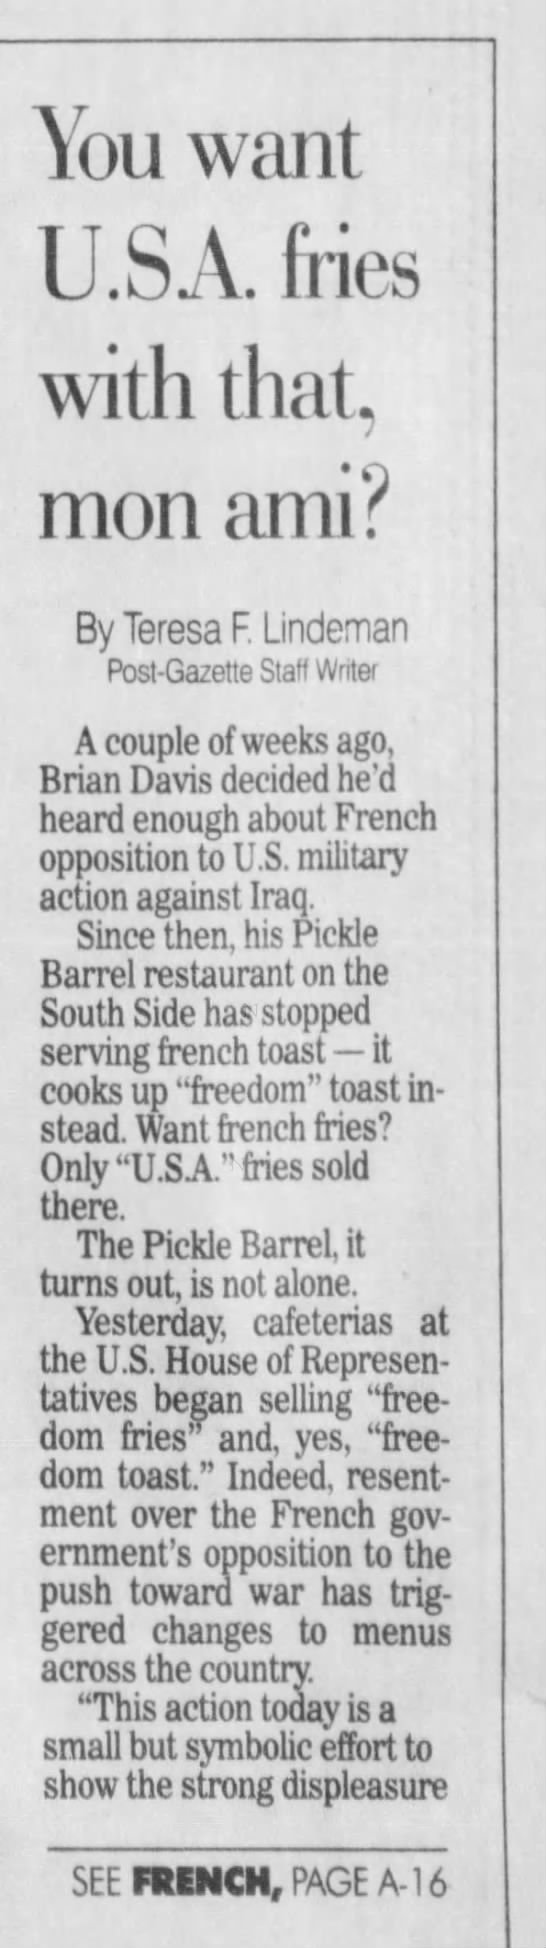 """Freedom toast,"" for french toast (2003). -"